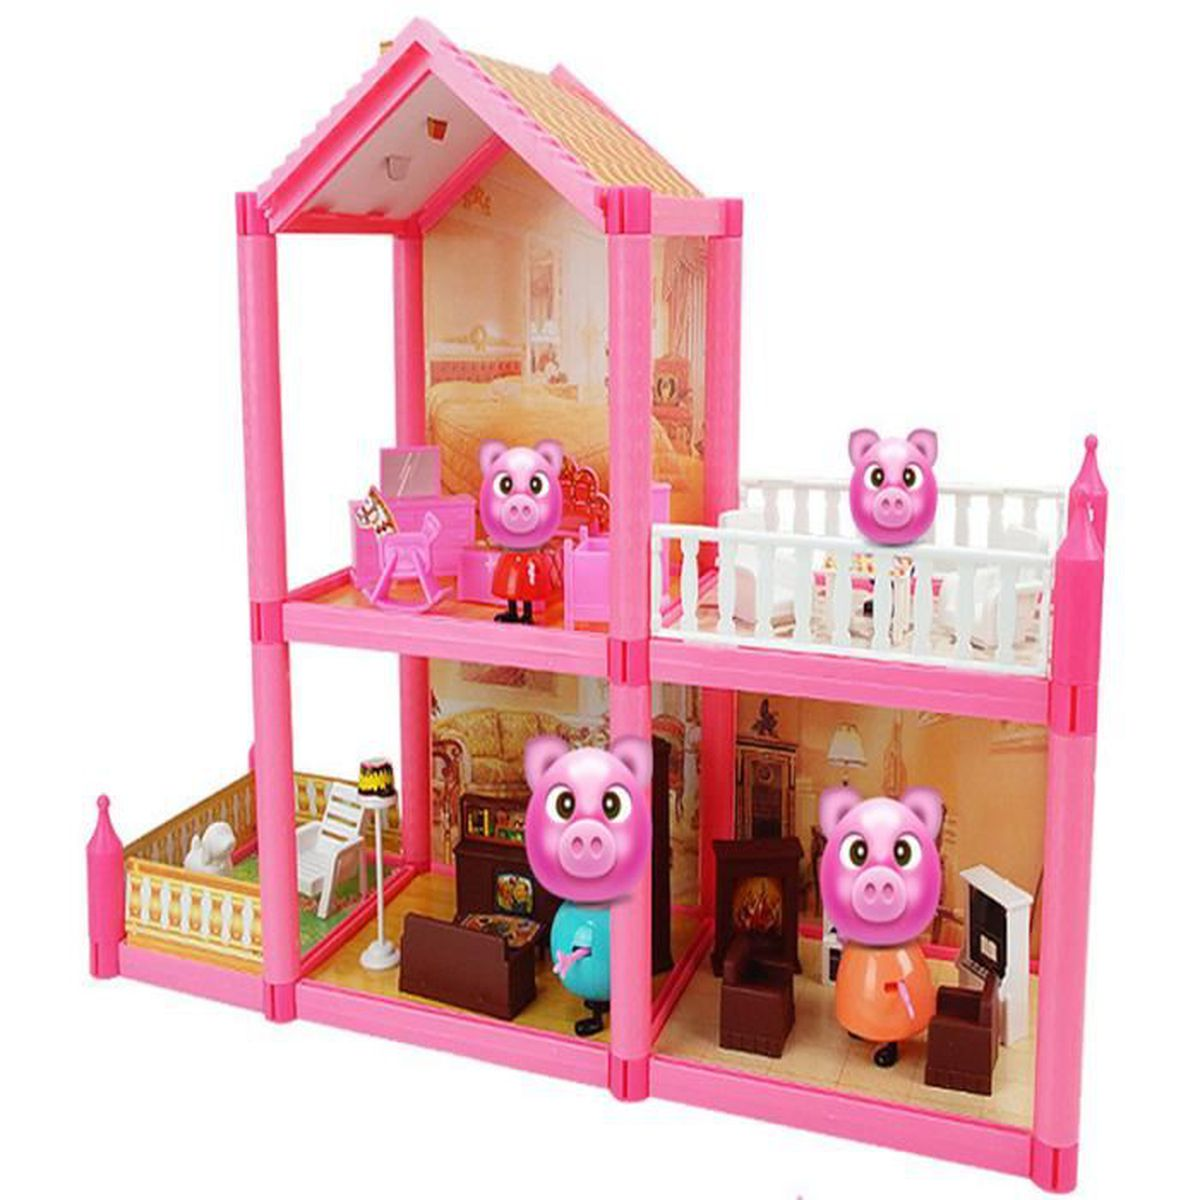 peppa pig princesse suite maison b collection achat vente maison m nage cdiscount. Black Bedroom Furniture Sets. Home Design Ideas